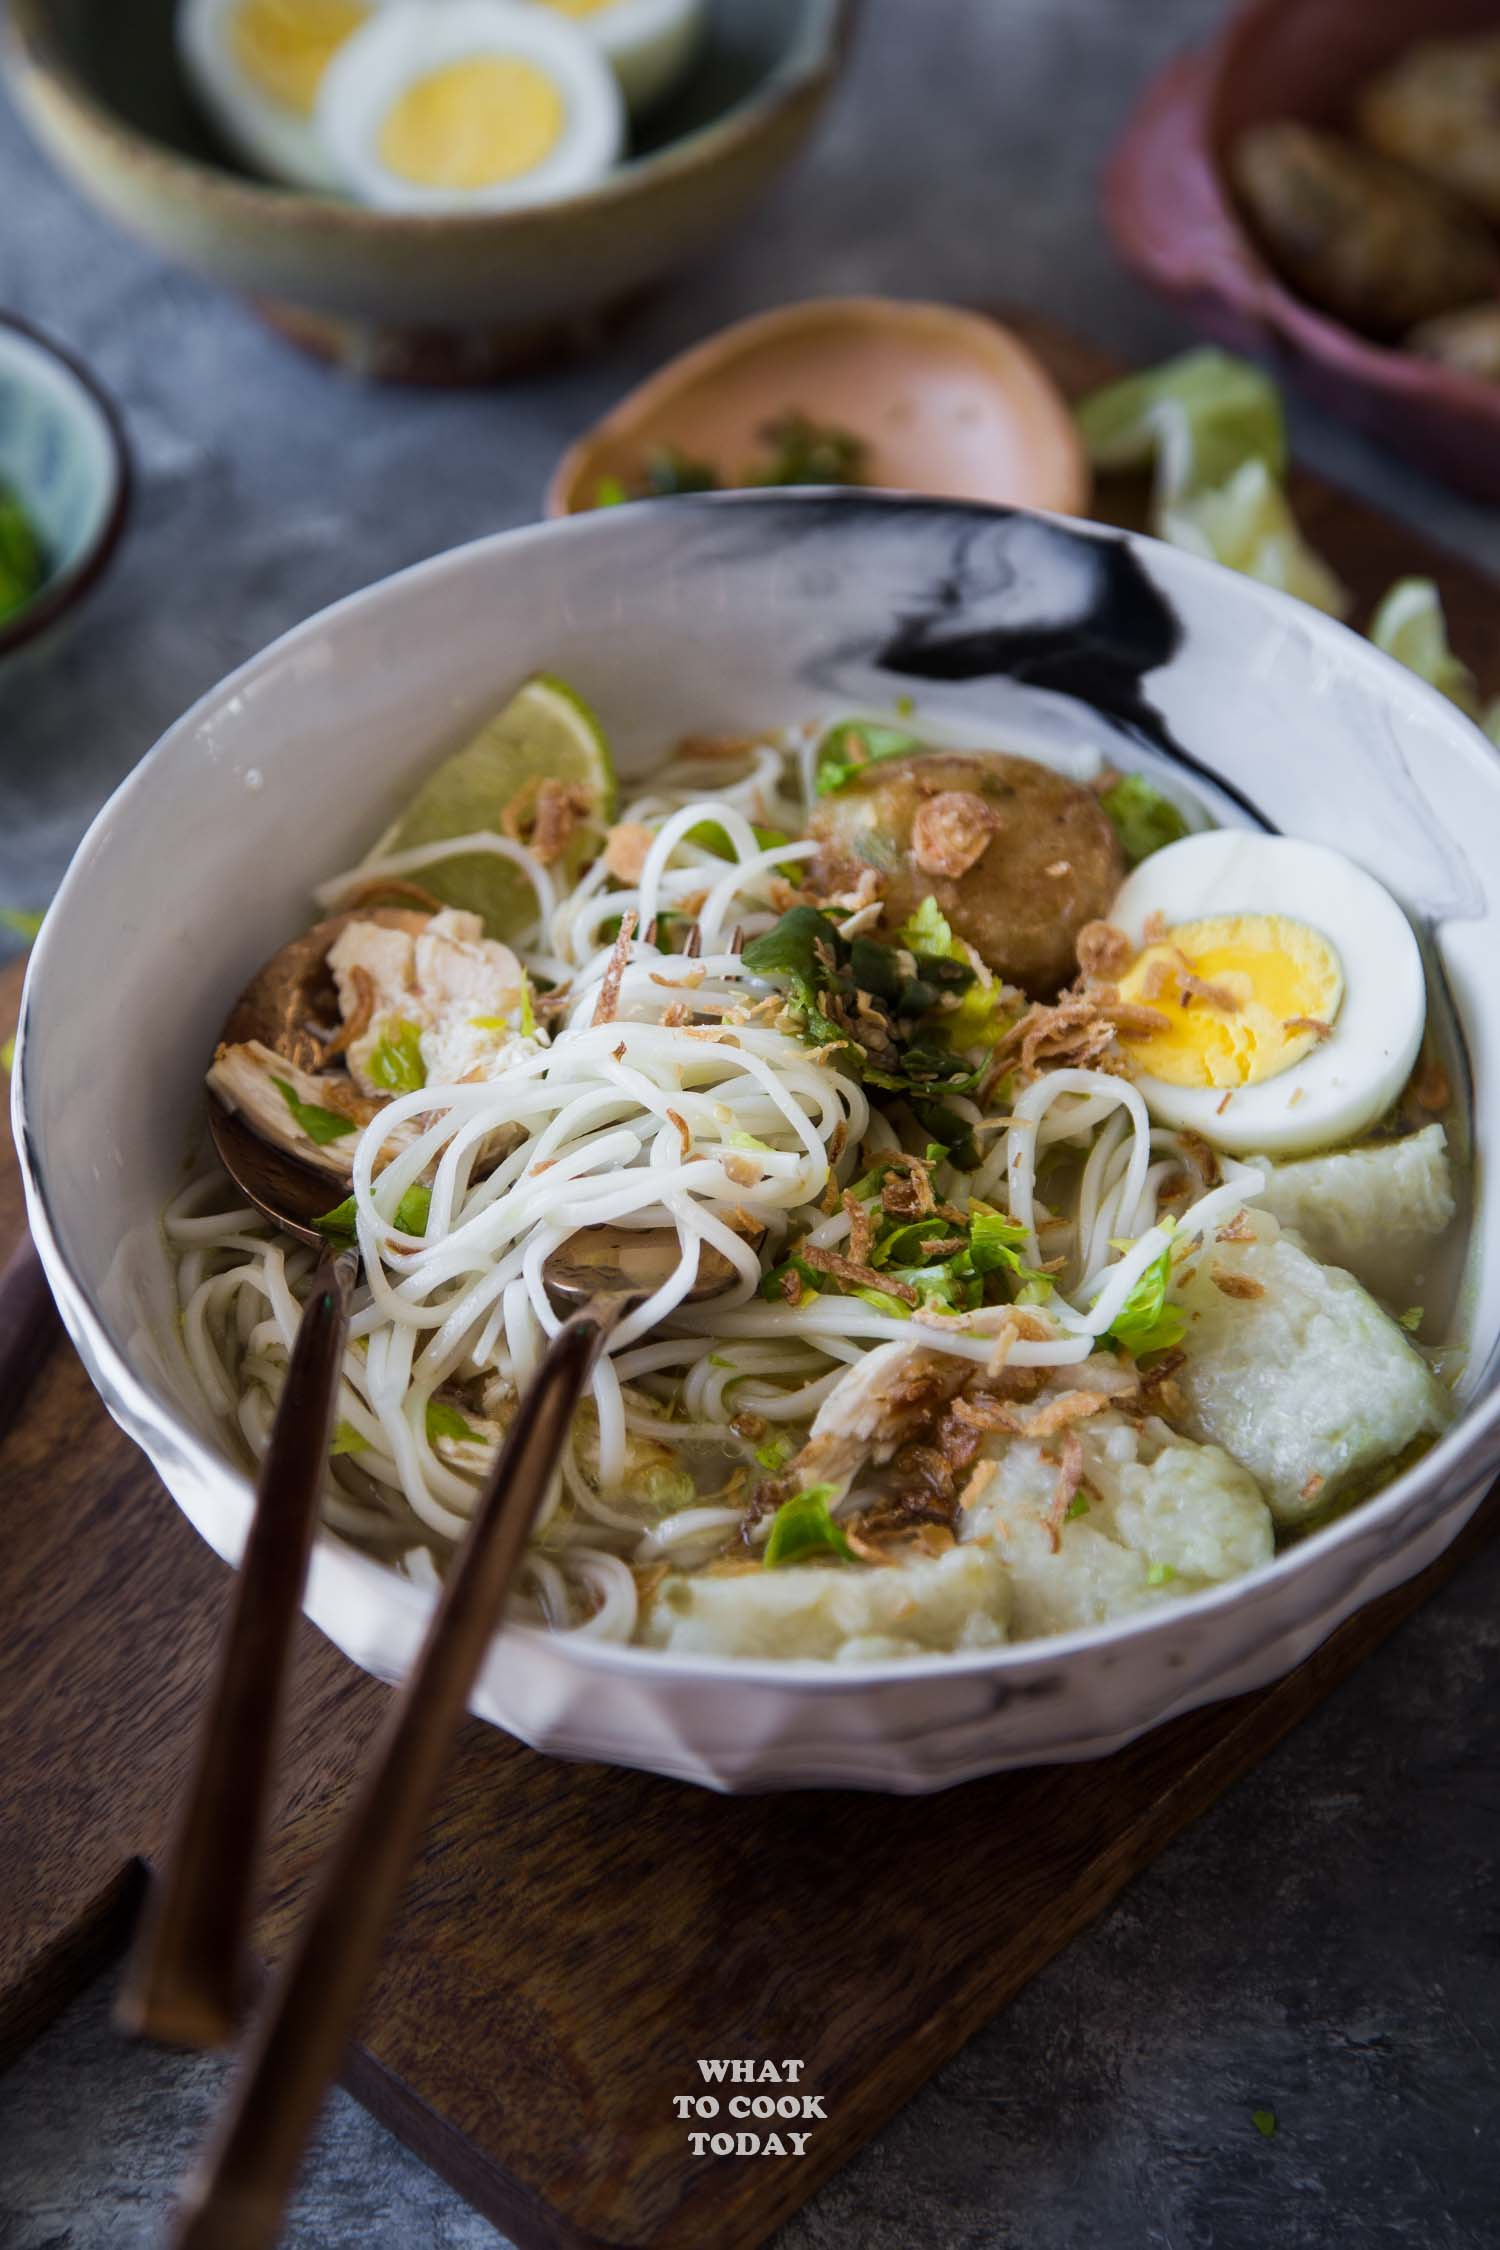 Soto Banjar (South Kalimantan Chicken Noodle Soup) #instantpot #pressurecooking #chickensoup #sotobanjar #indonesianfood